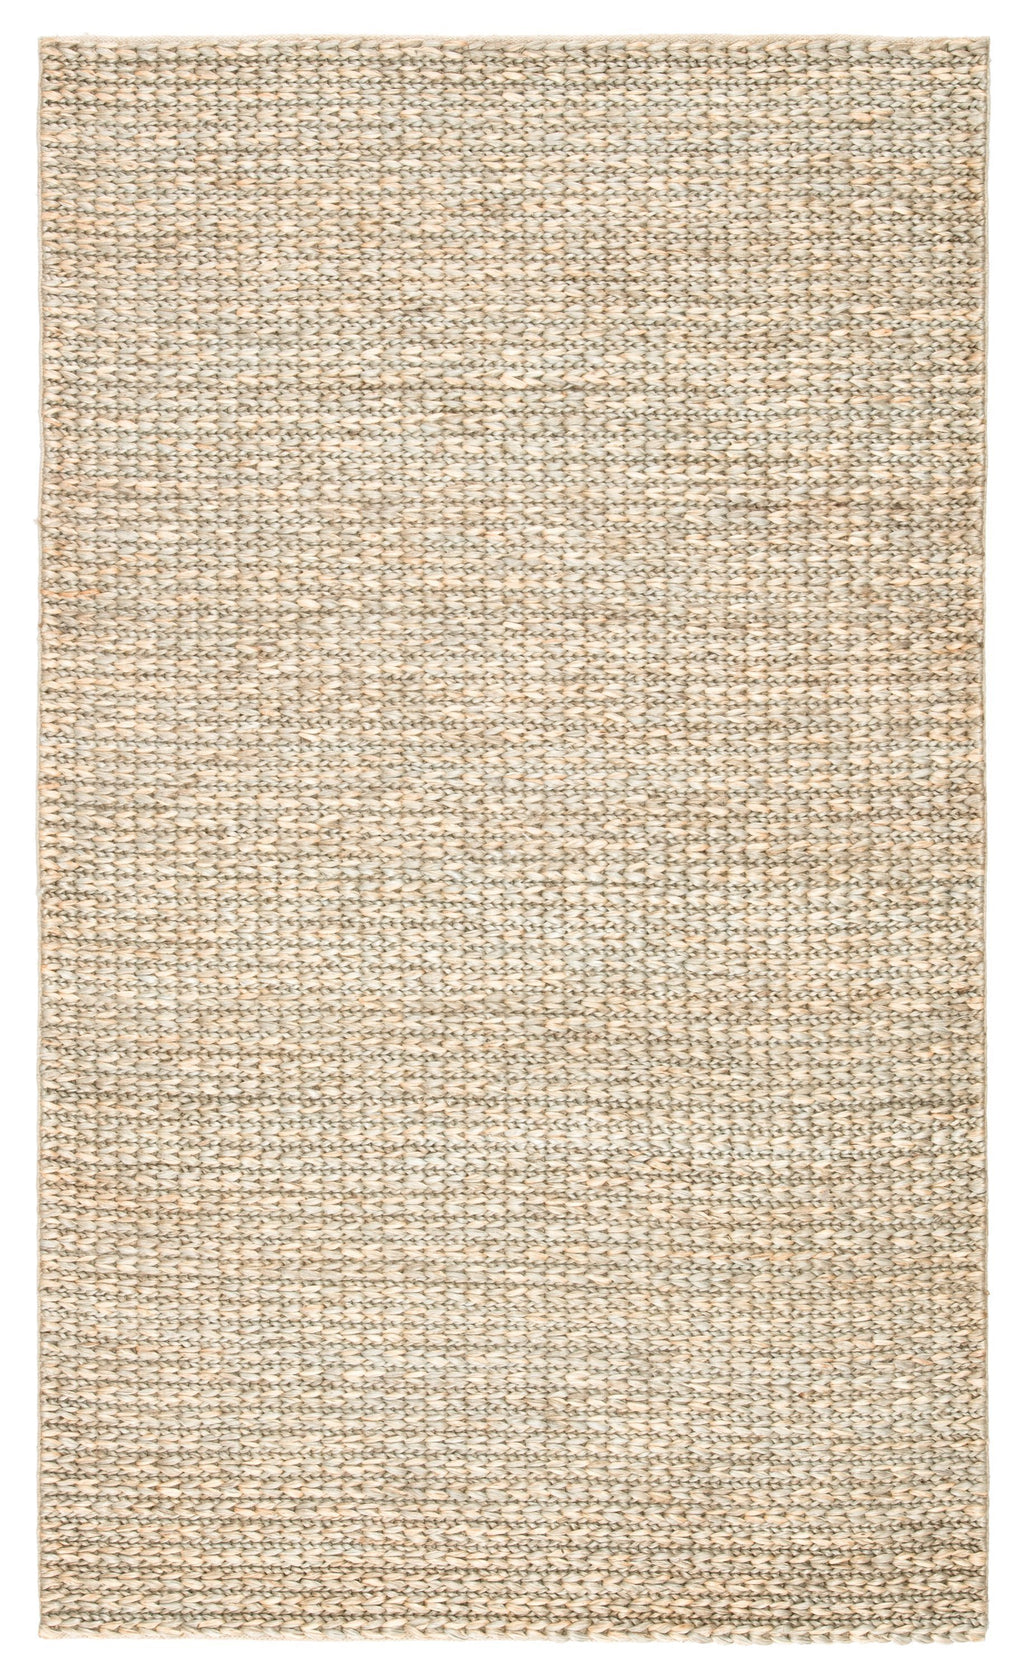 Calista Solid Rug in Swamp & Tan design by Jaipur Living